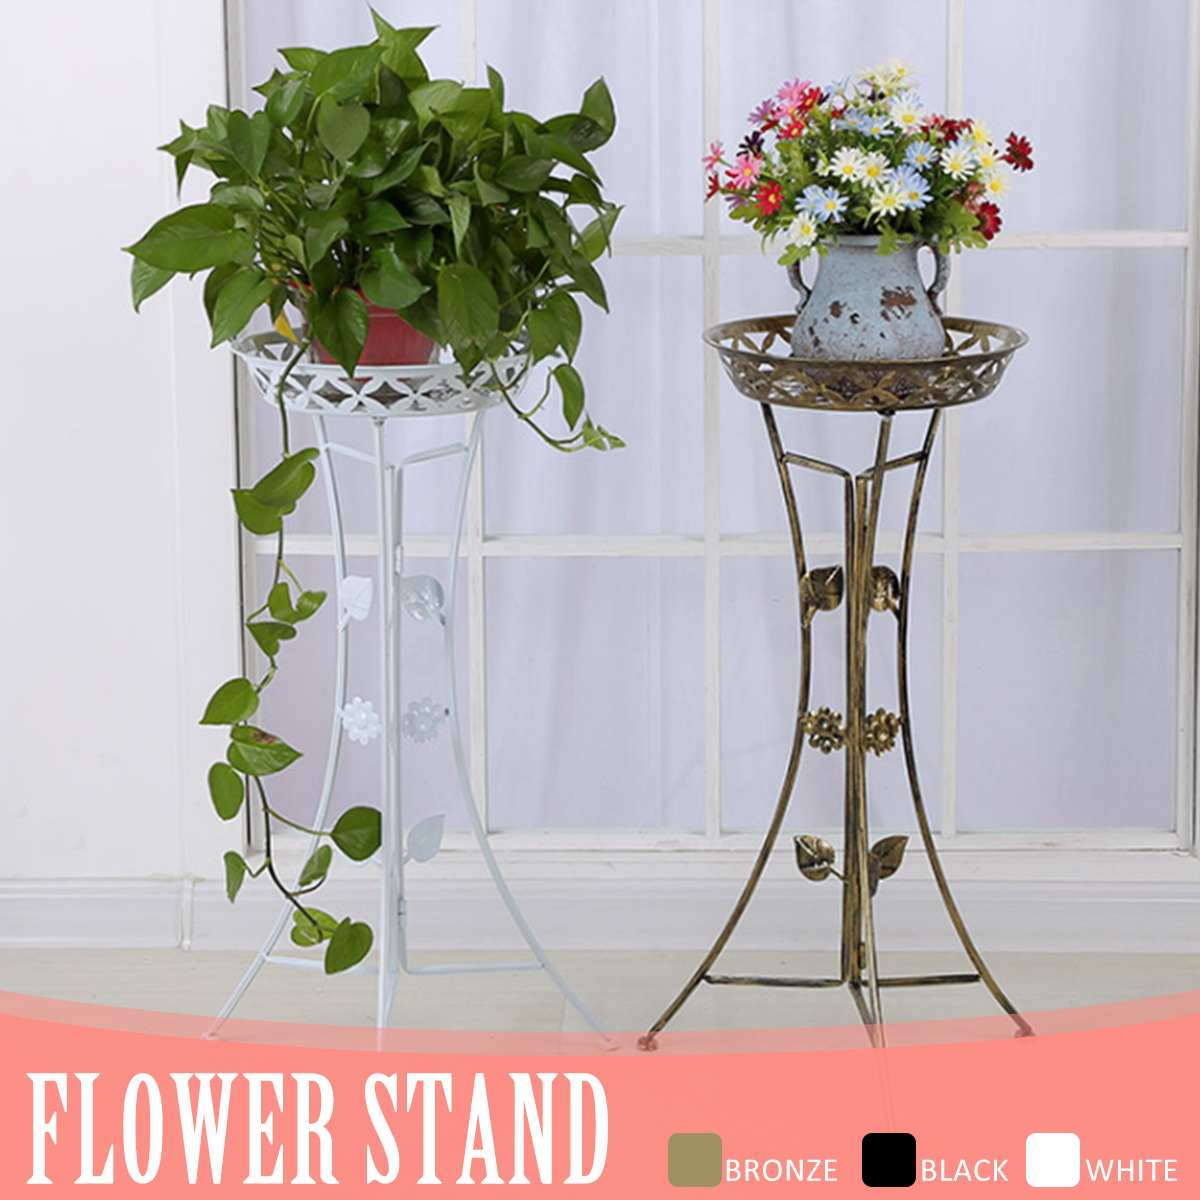 Metal Plant Stand Shelf Black/White/gold Elegant Display Garden Balcony Flower Pot Shelf Rack Holder Home Indoor Decor